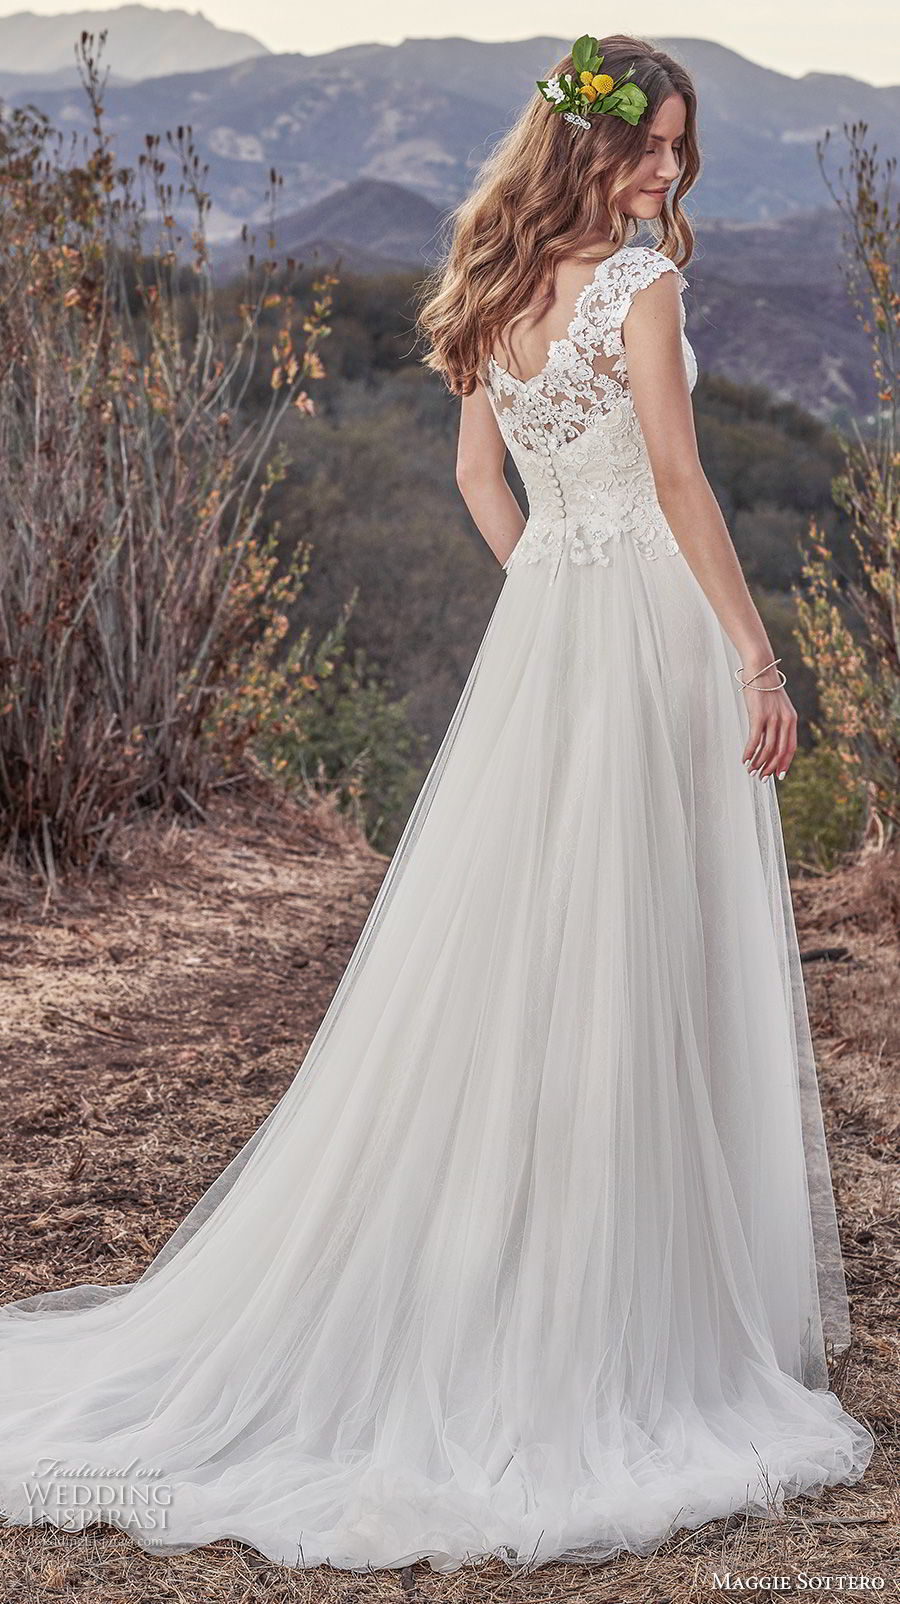 maggie sottero fall 2017 bridal cap sleeves v neck heavily embellished bodice romantic soft a  line wedding dress v back medium train (932) bv